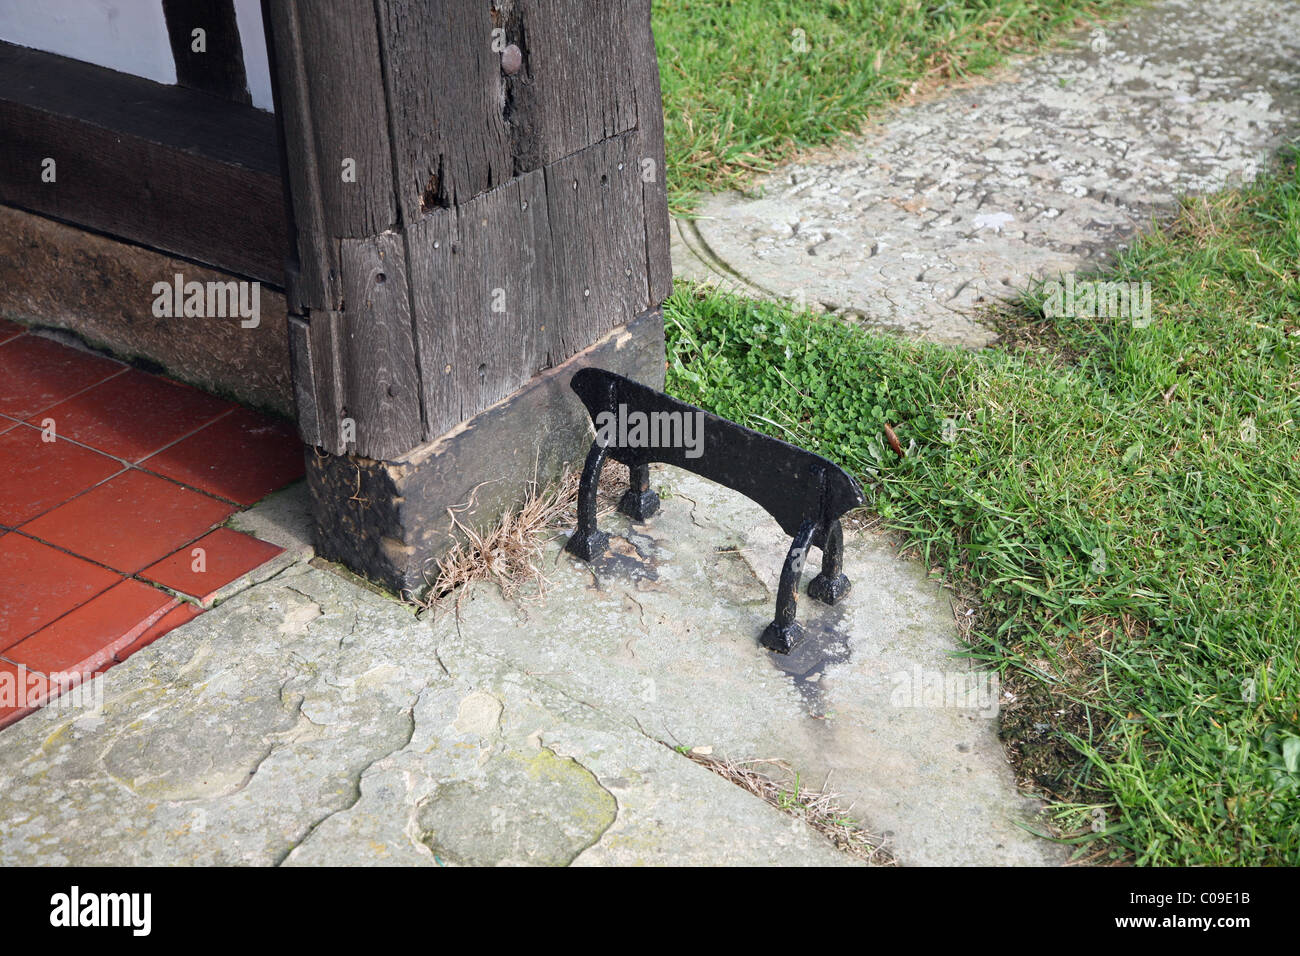 a metal iron foot scraper outside a wooden church porch - Stock Image